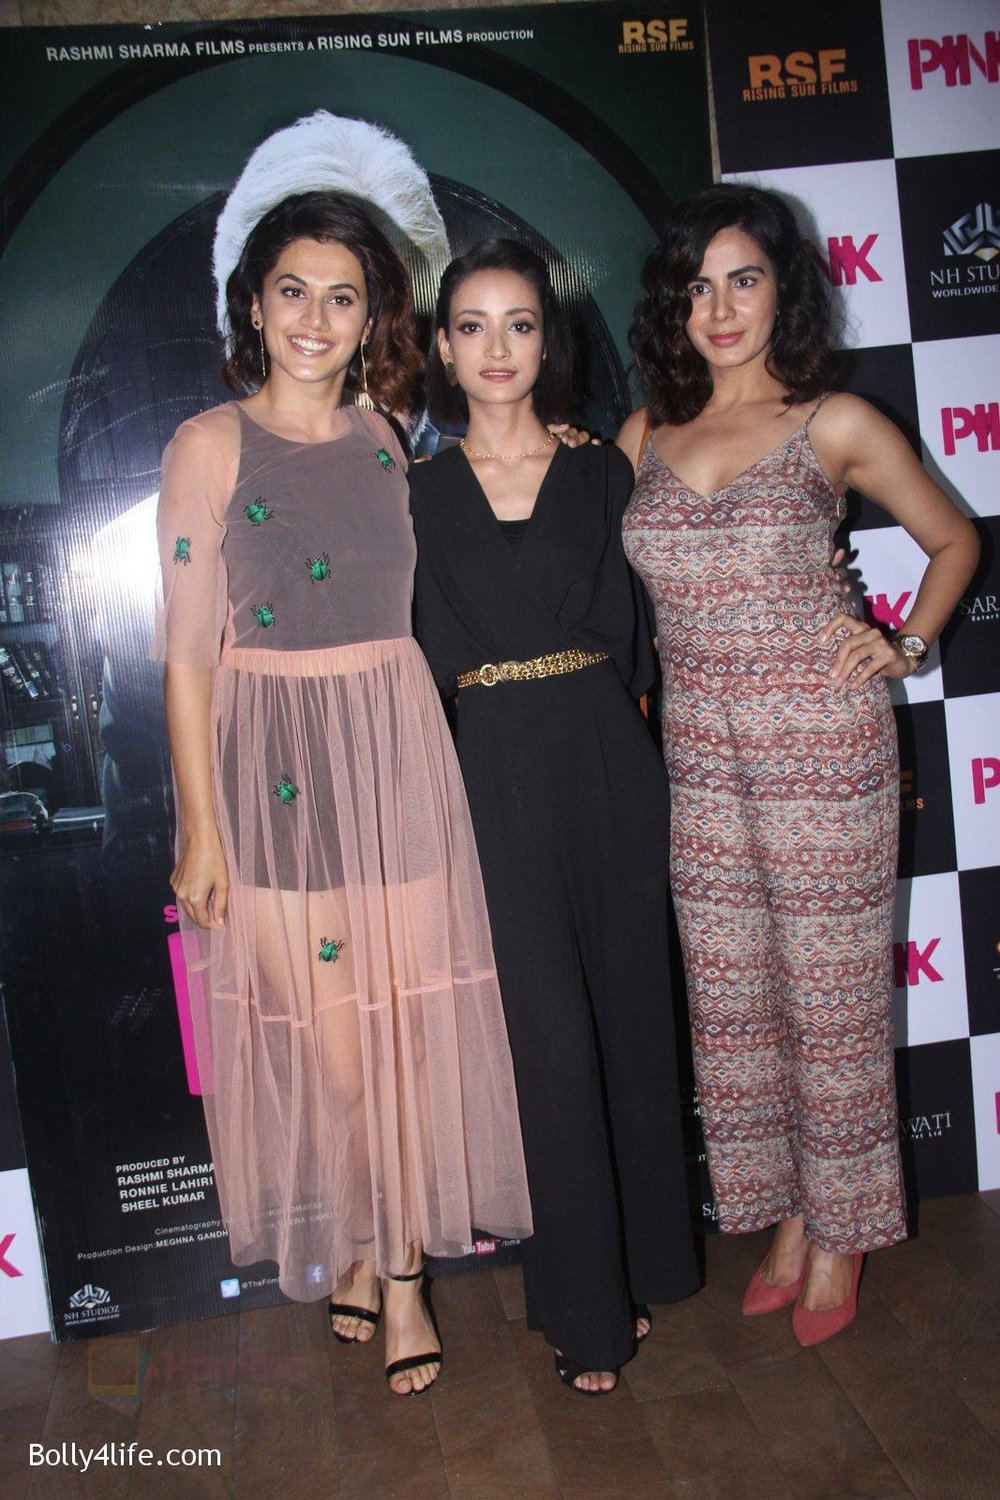 Kirti-Kulhari-Taapsee-Pannu-Andrea-Tariang-at-Pink-Screening-in-Lightbox-on-12th-Sept-2016-81.jpg